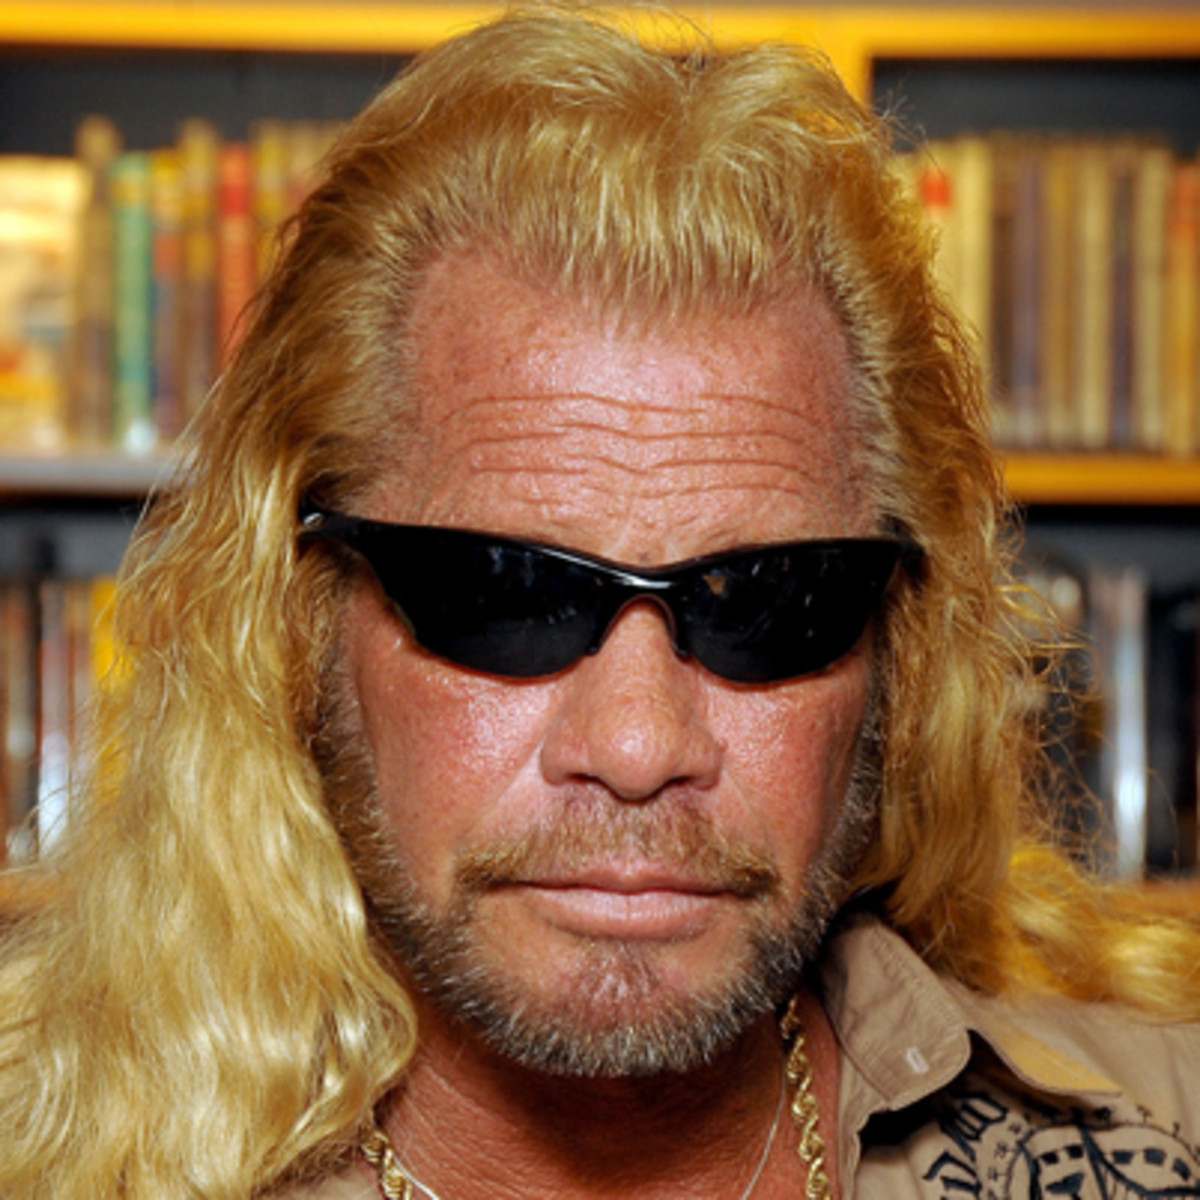 Duane chapman reality television star biography for Duane chapman dog the bounty hunter